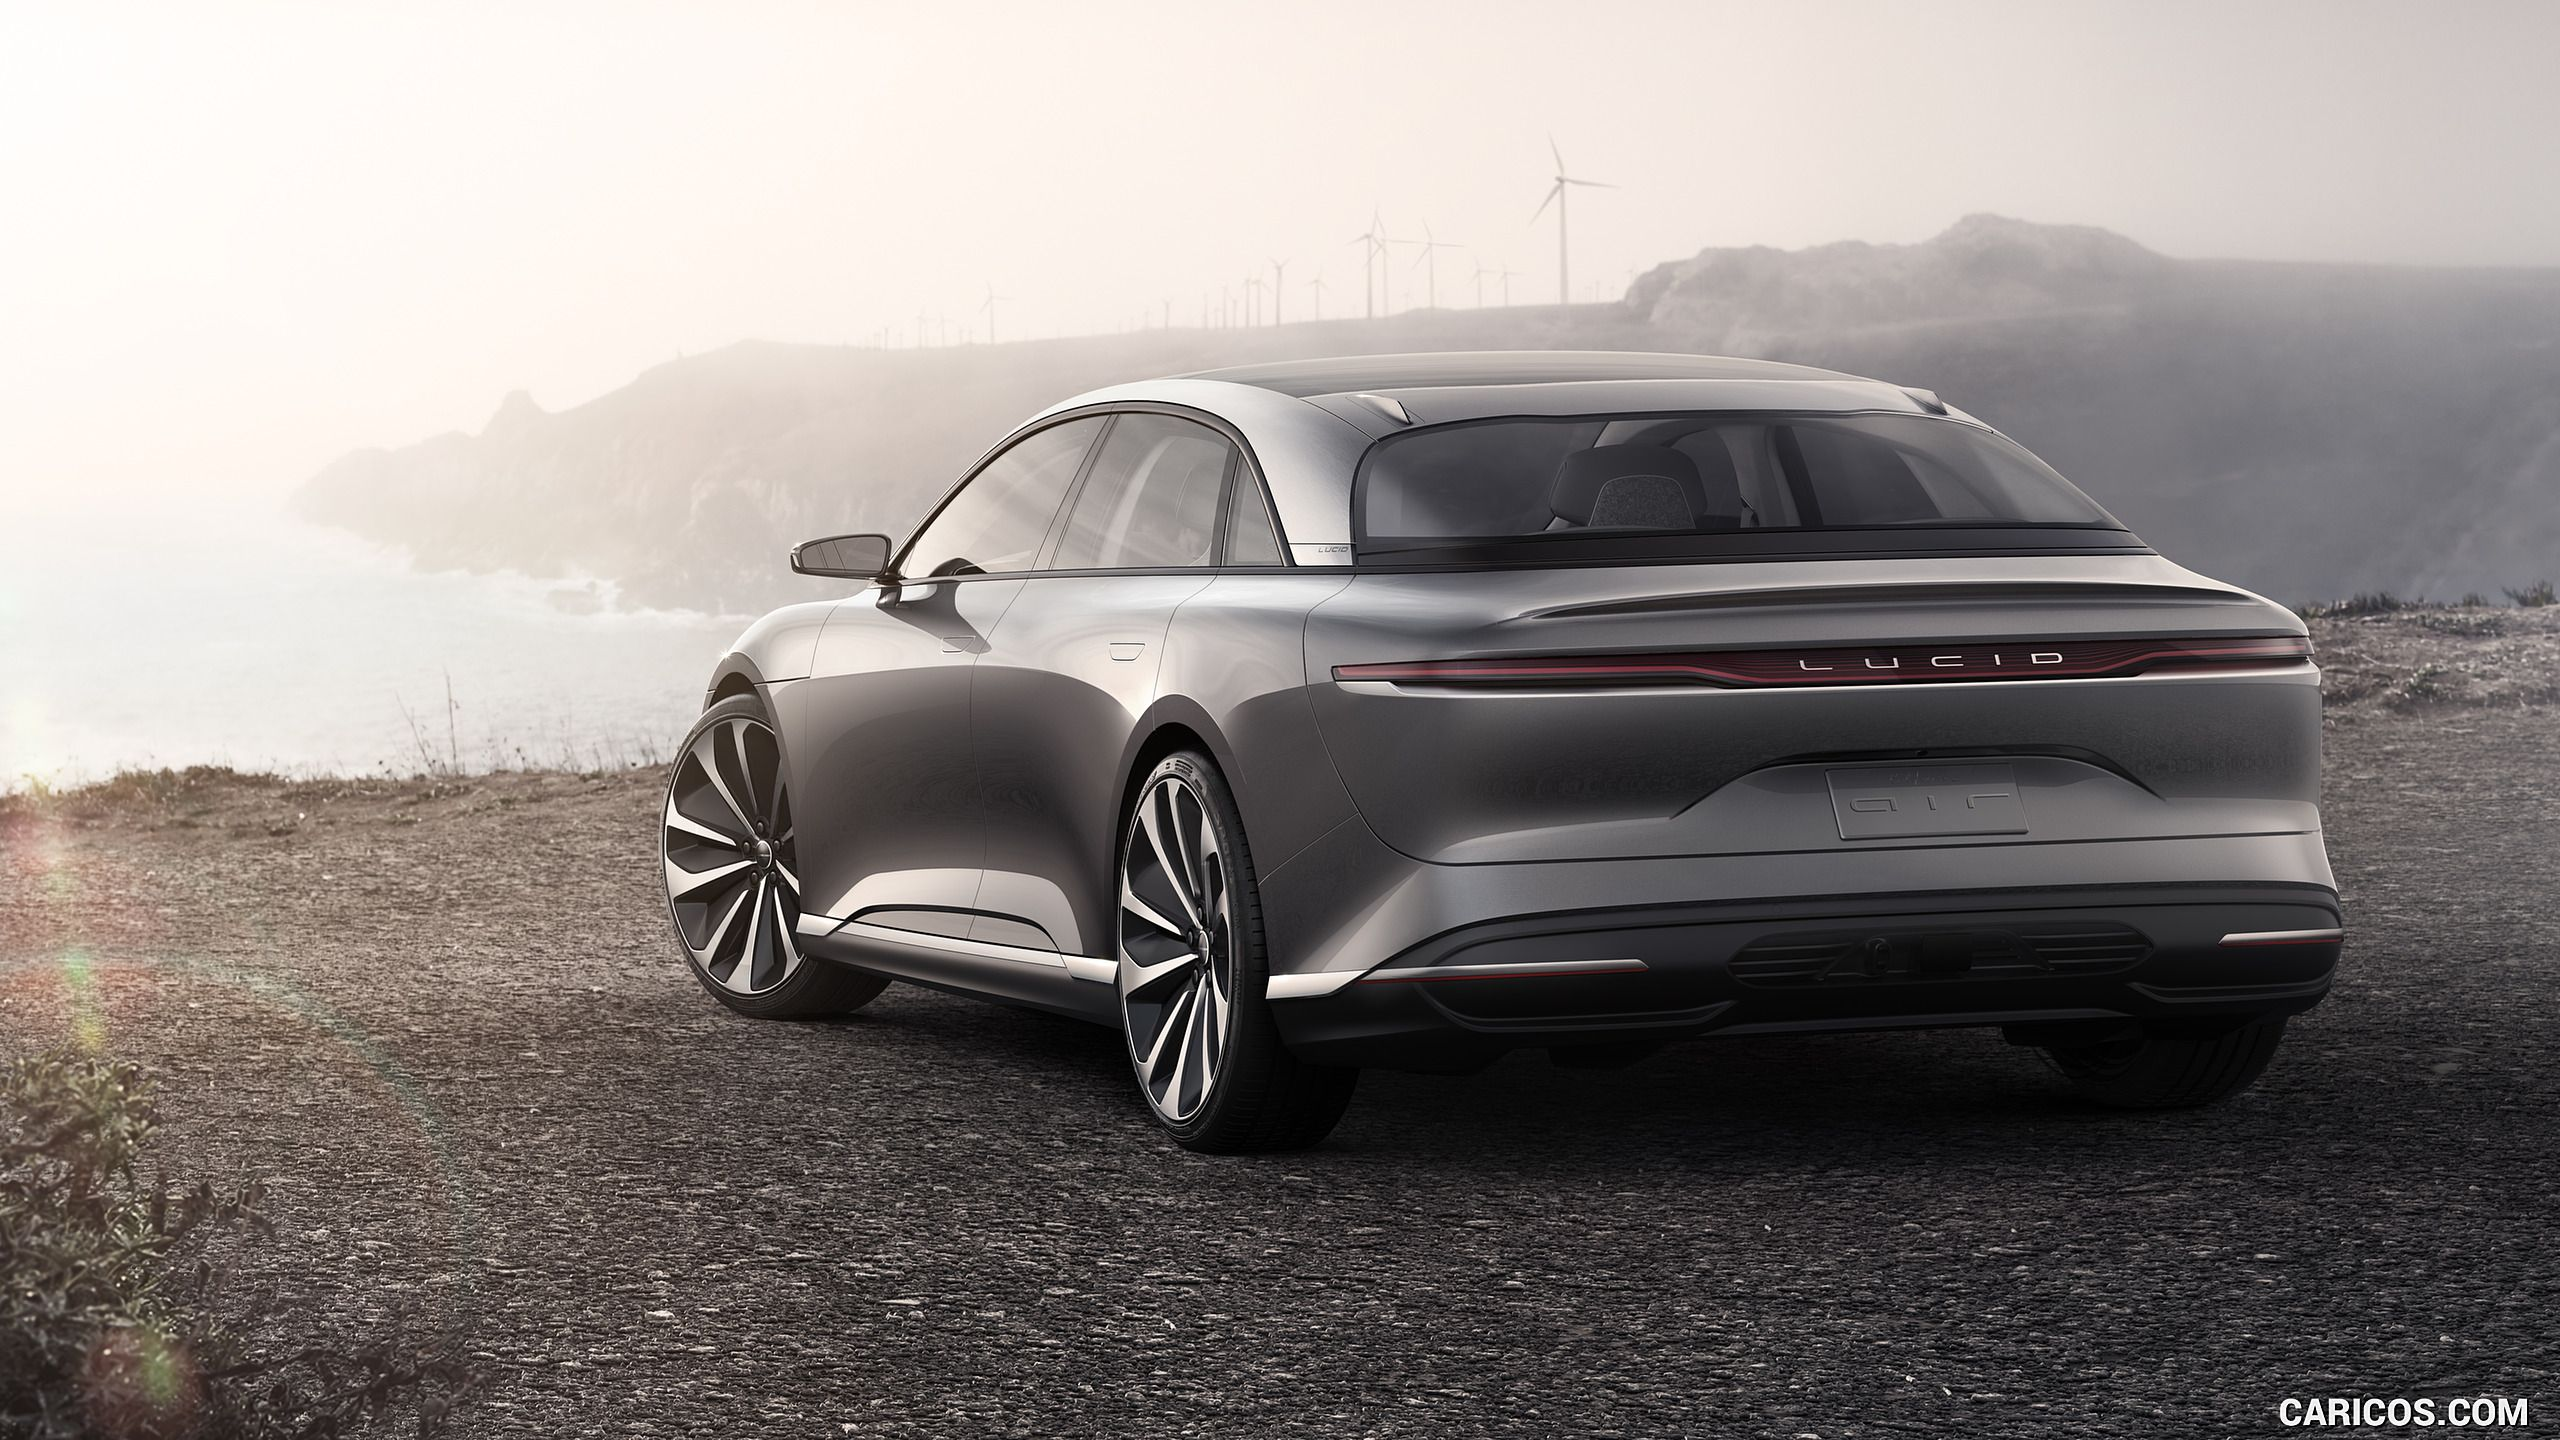 2019 Lucid Air Wallpaper Electric Cars Street Racing Cars Concept Cars